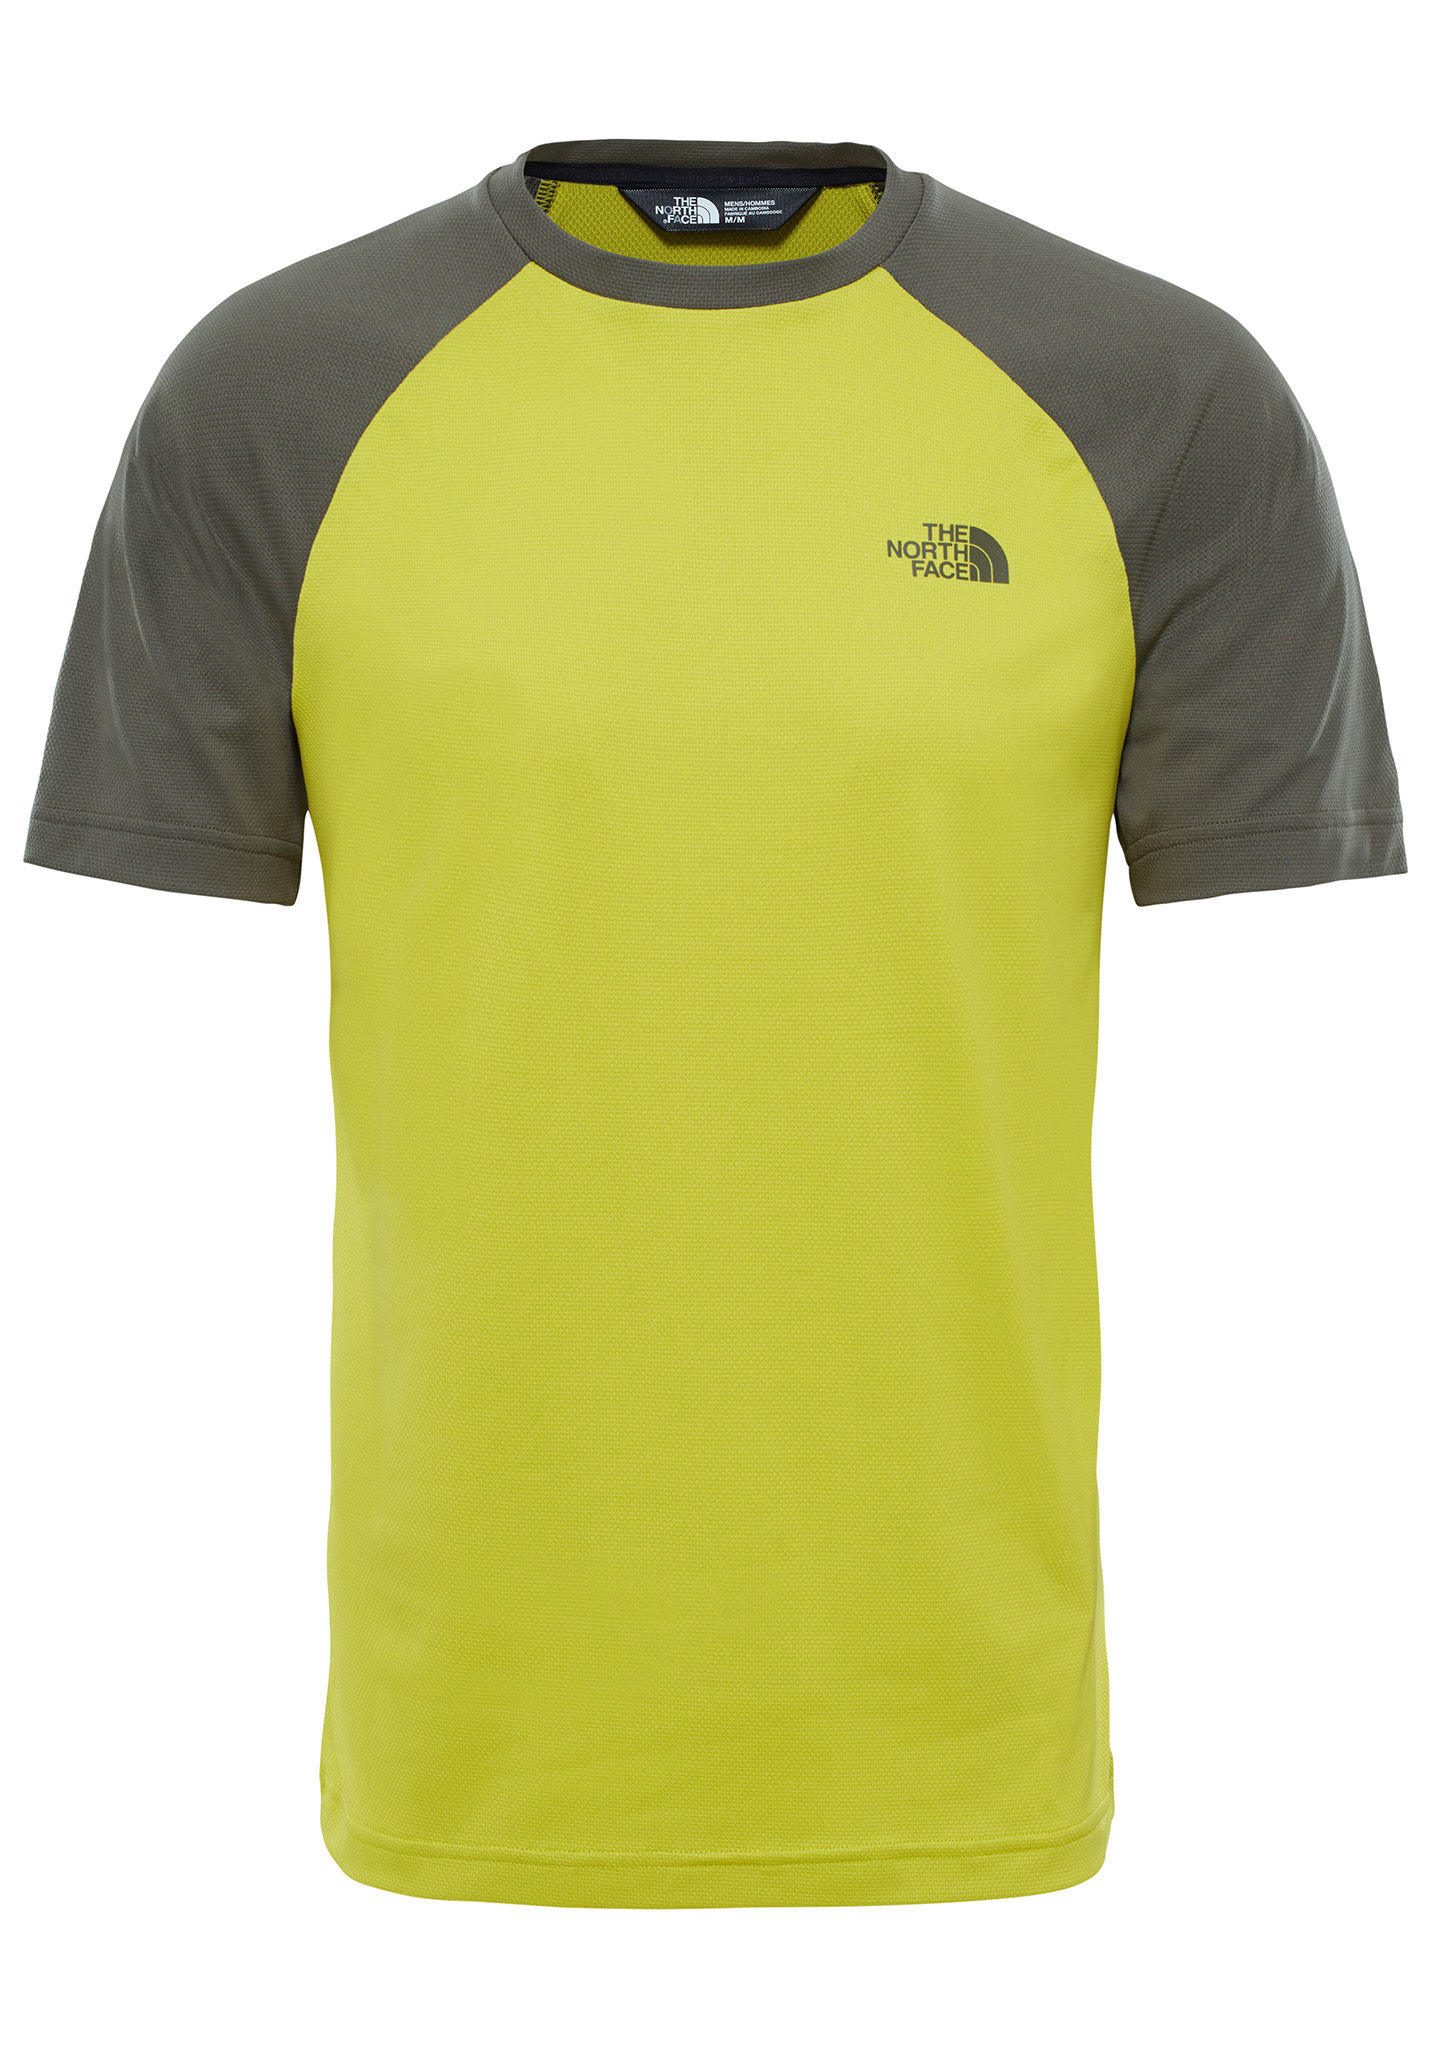 c3134dbe2 THE NORTH FACE Tanken - T-Shirt for Men - Yellow